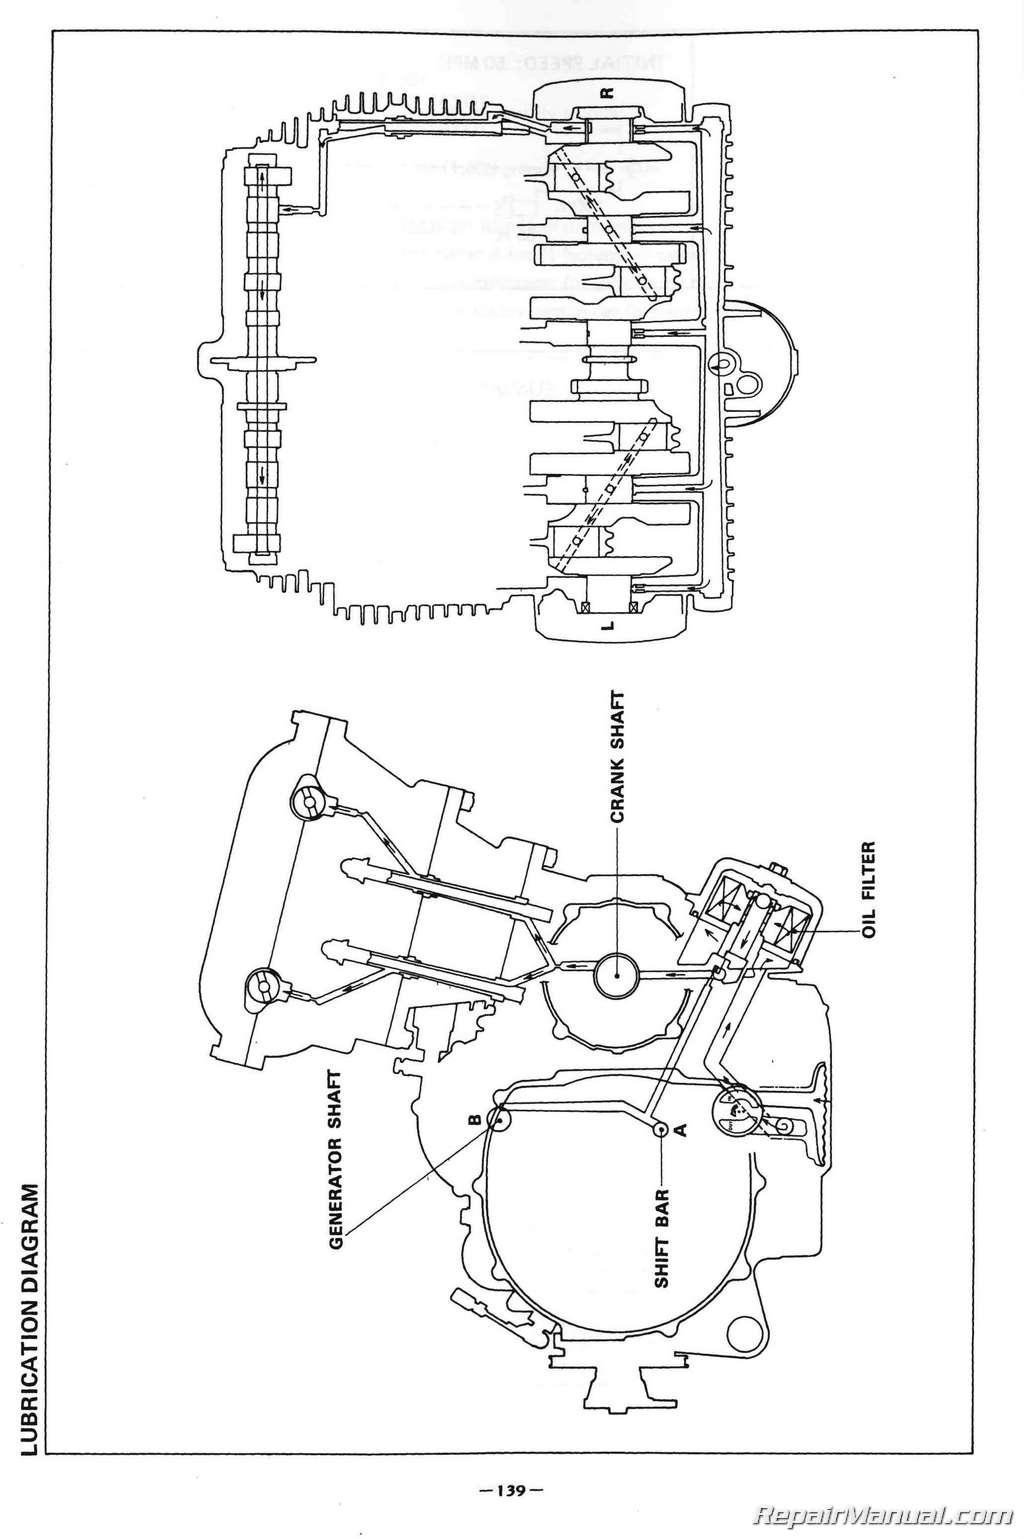 Yamaha Maxima Wiring Diagram Great Design Of G2 Starter Generator Free Picture Xj650 Maxim Schematics Diagrams U2022 Rh Parntesis Co Xj750